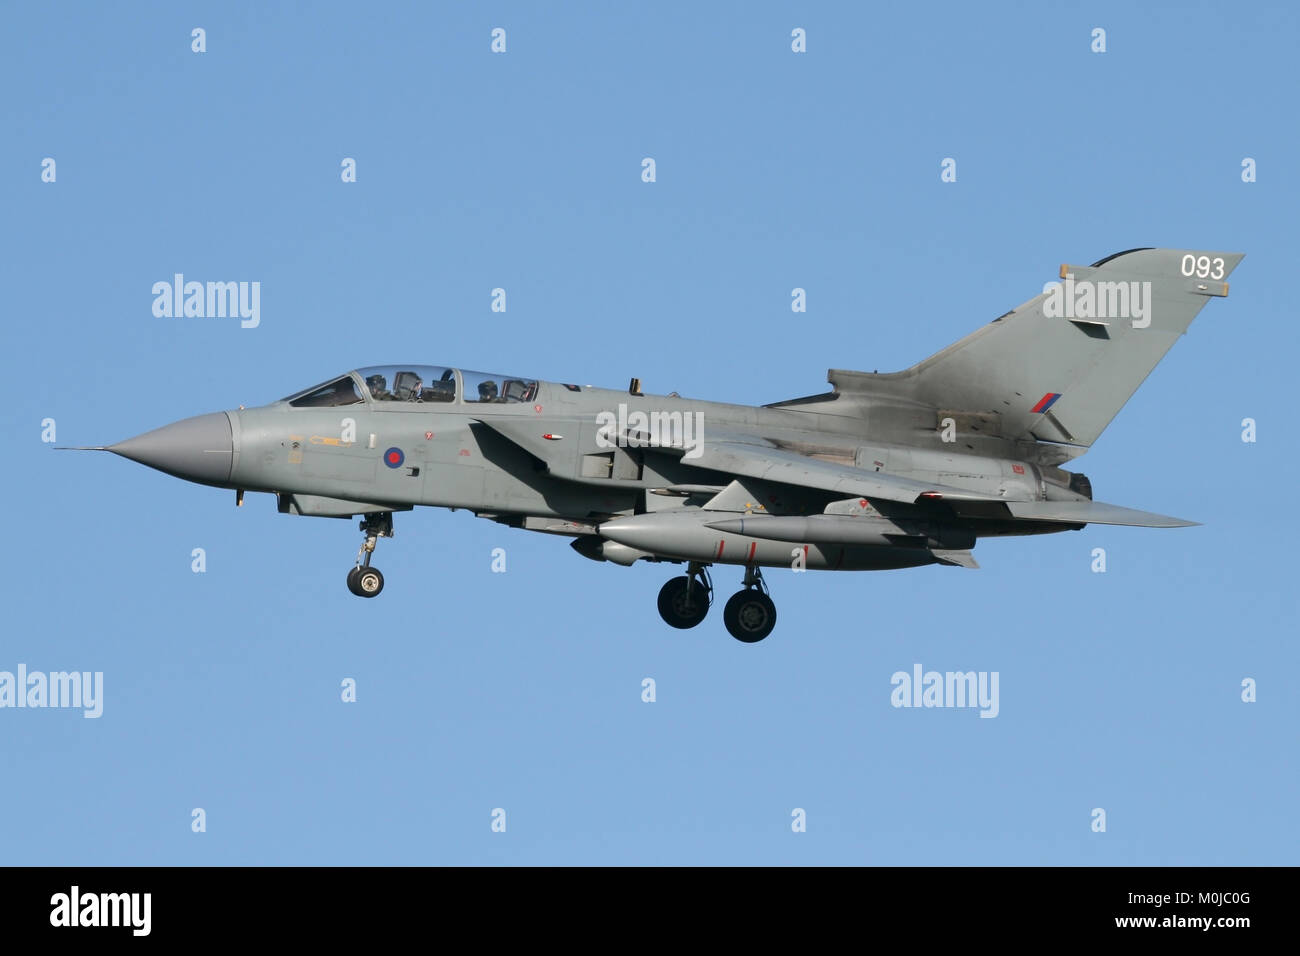 Unmarked RAF Tornado GR4 from the Marham wing turning onto final approach on a bright clear day. - Stock Image